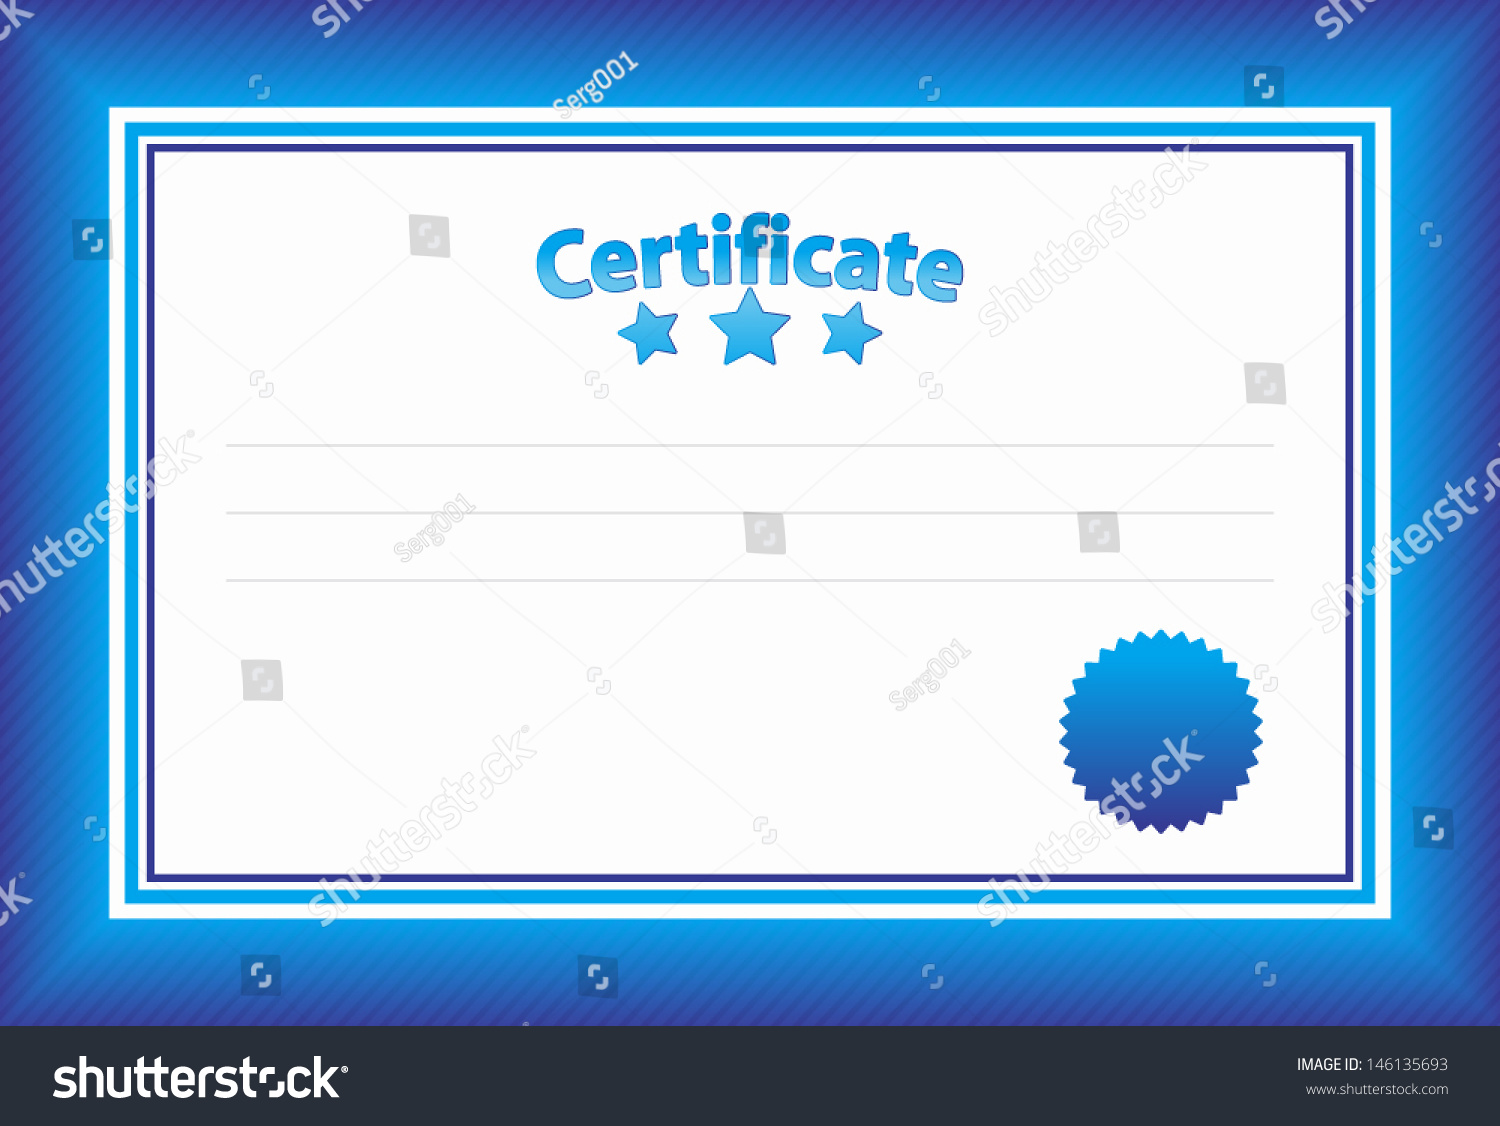 Blue certificate template stock vector 146135693 shutterstock blue certificate template xflitez Images